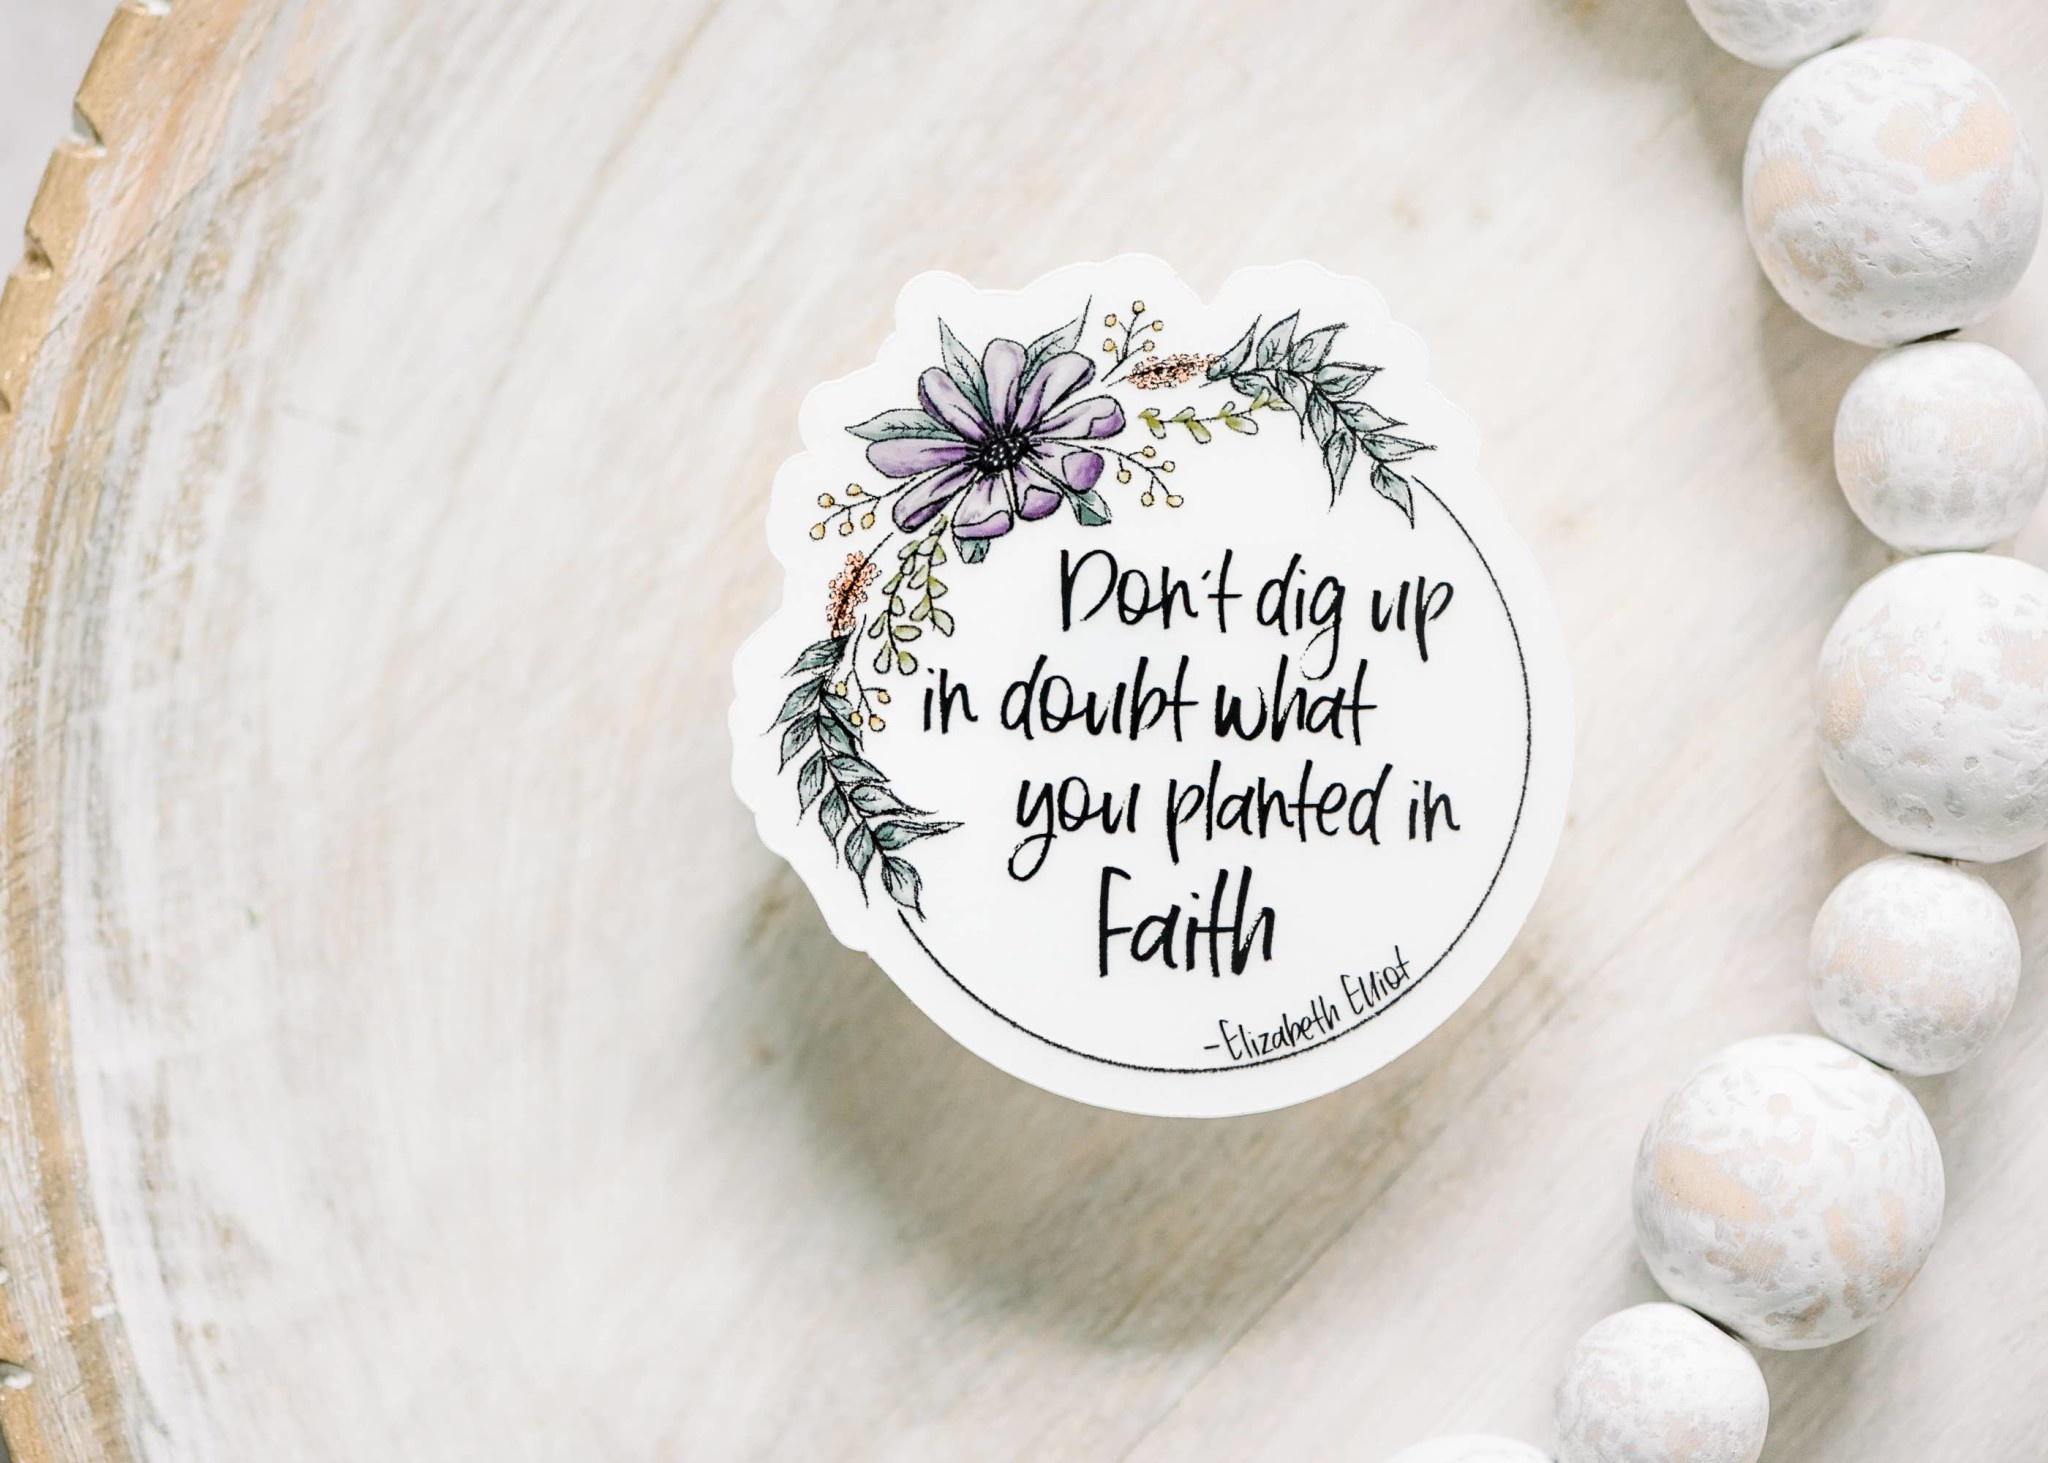 Faire: Savannah and James Co Christian Quote Sticker Clear, Vinyl Sticker, 3x3 in